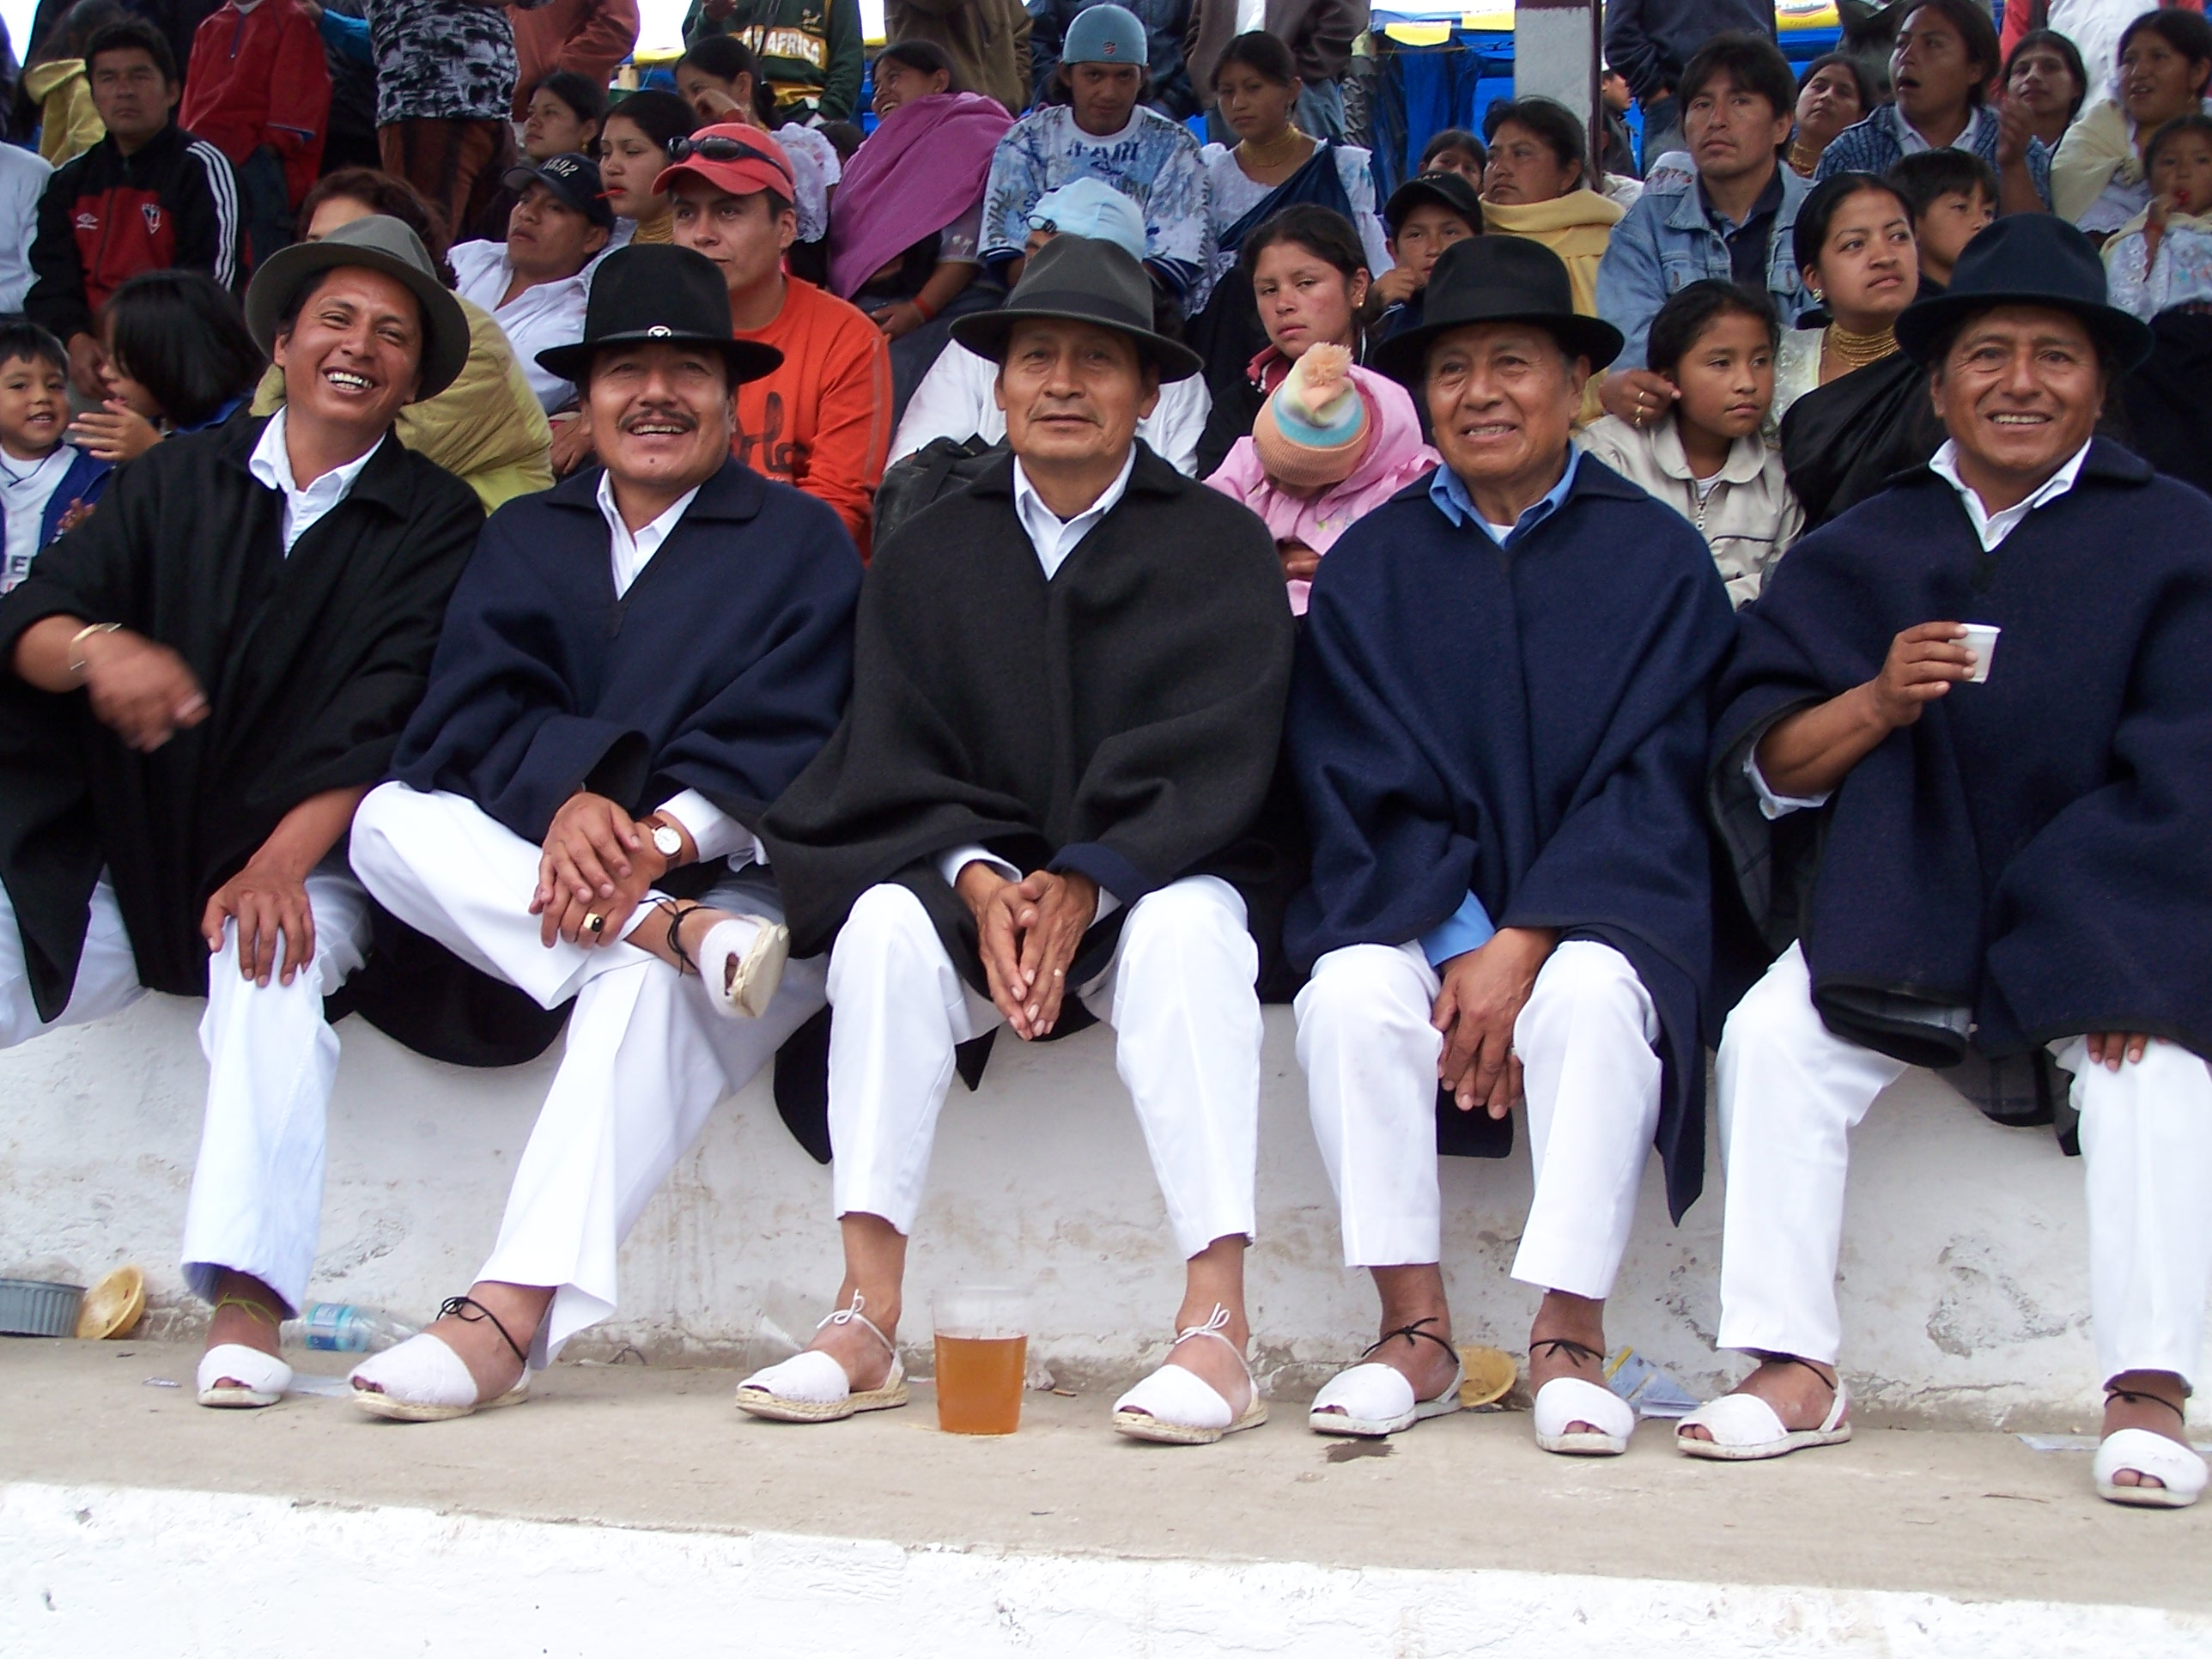 otavalo muslim girl personals 16 struggles every muslim girl will understand  muslim girls can't have male friends or even talk to guys without someone assuming we're dating 10.